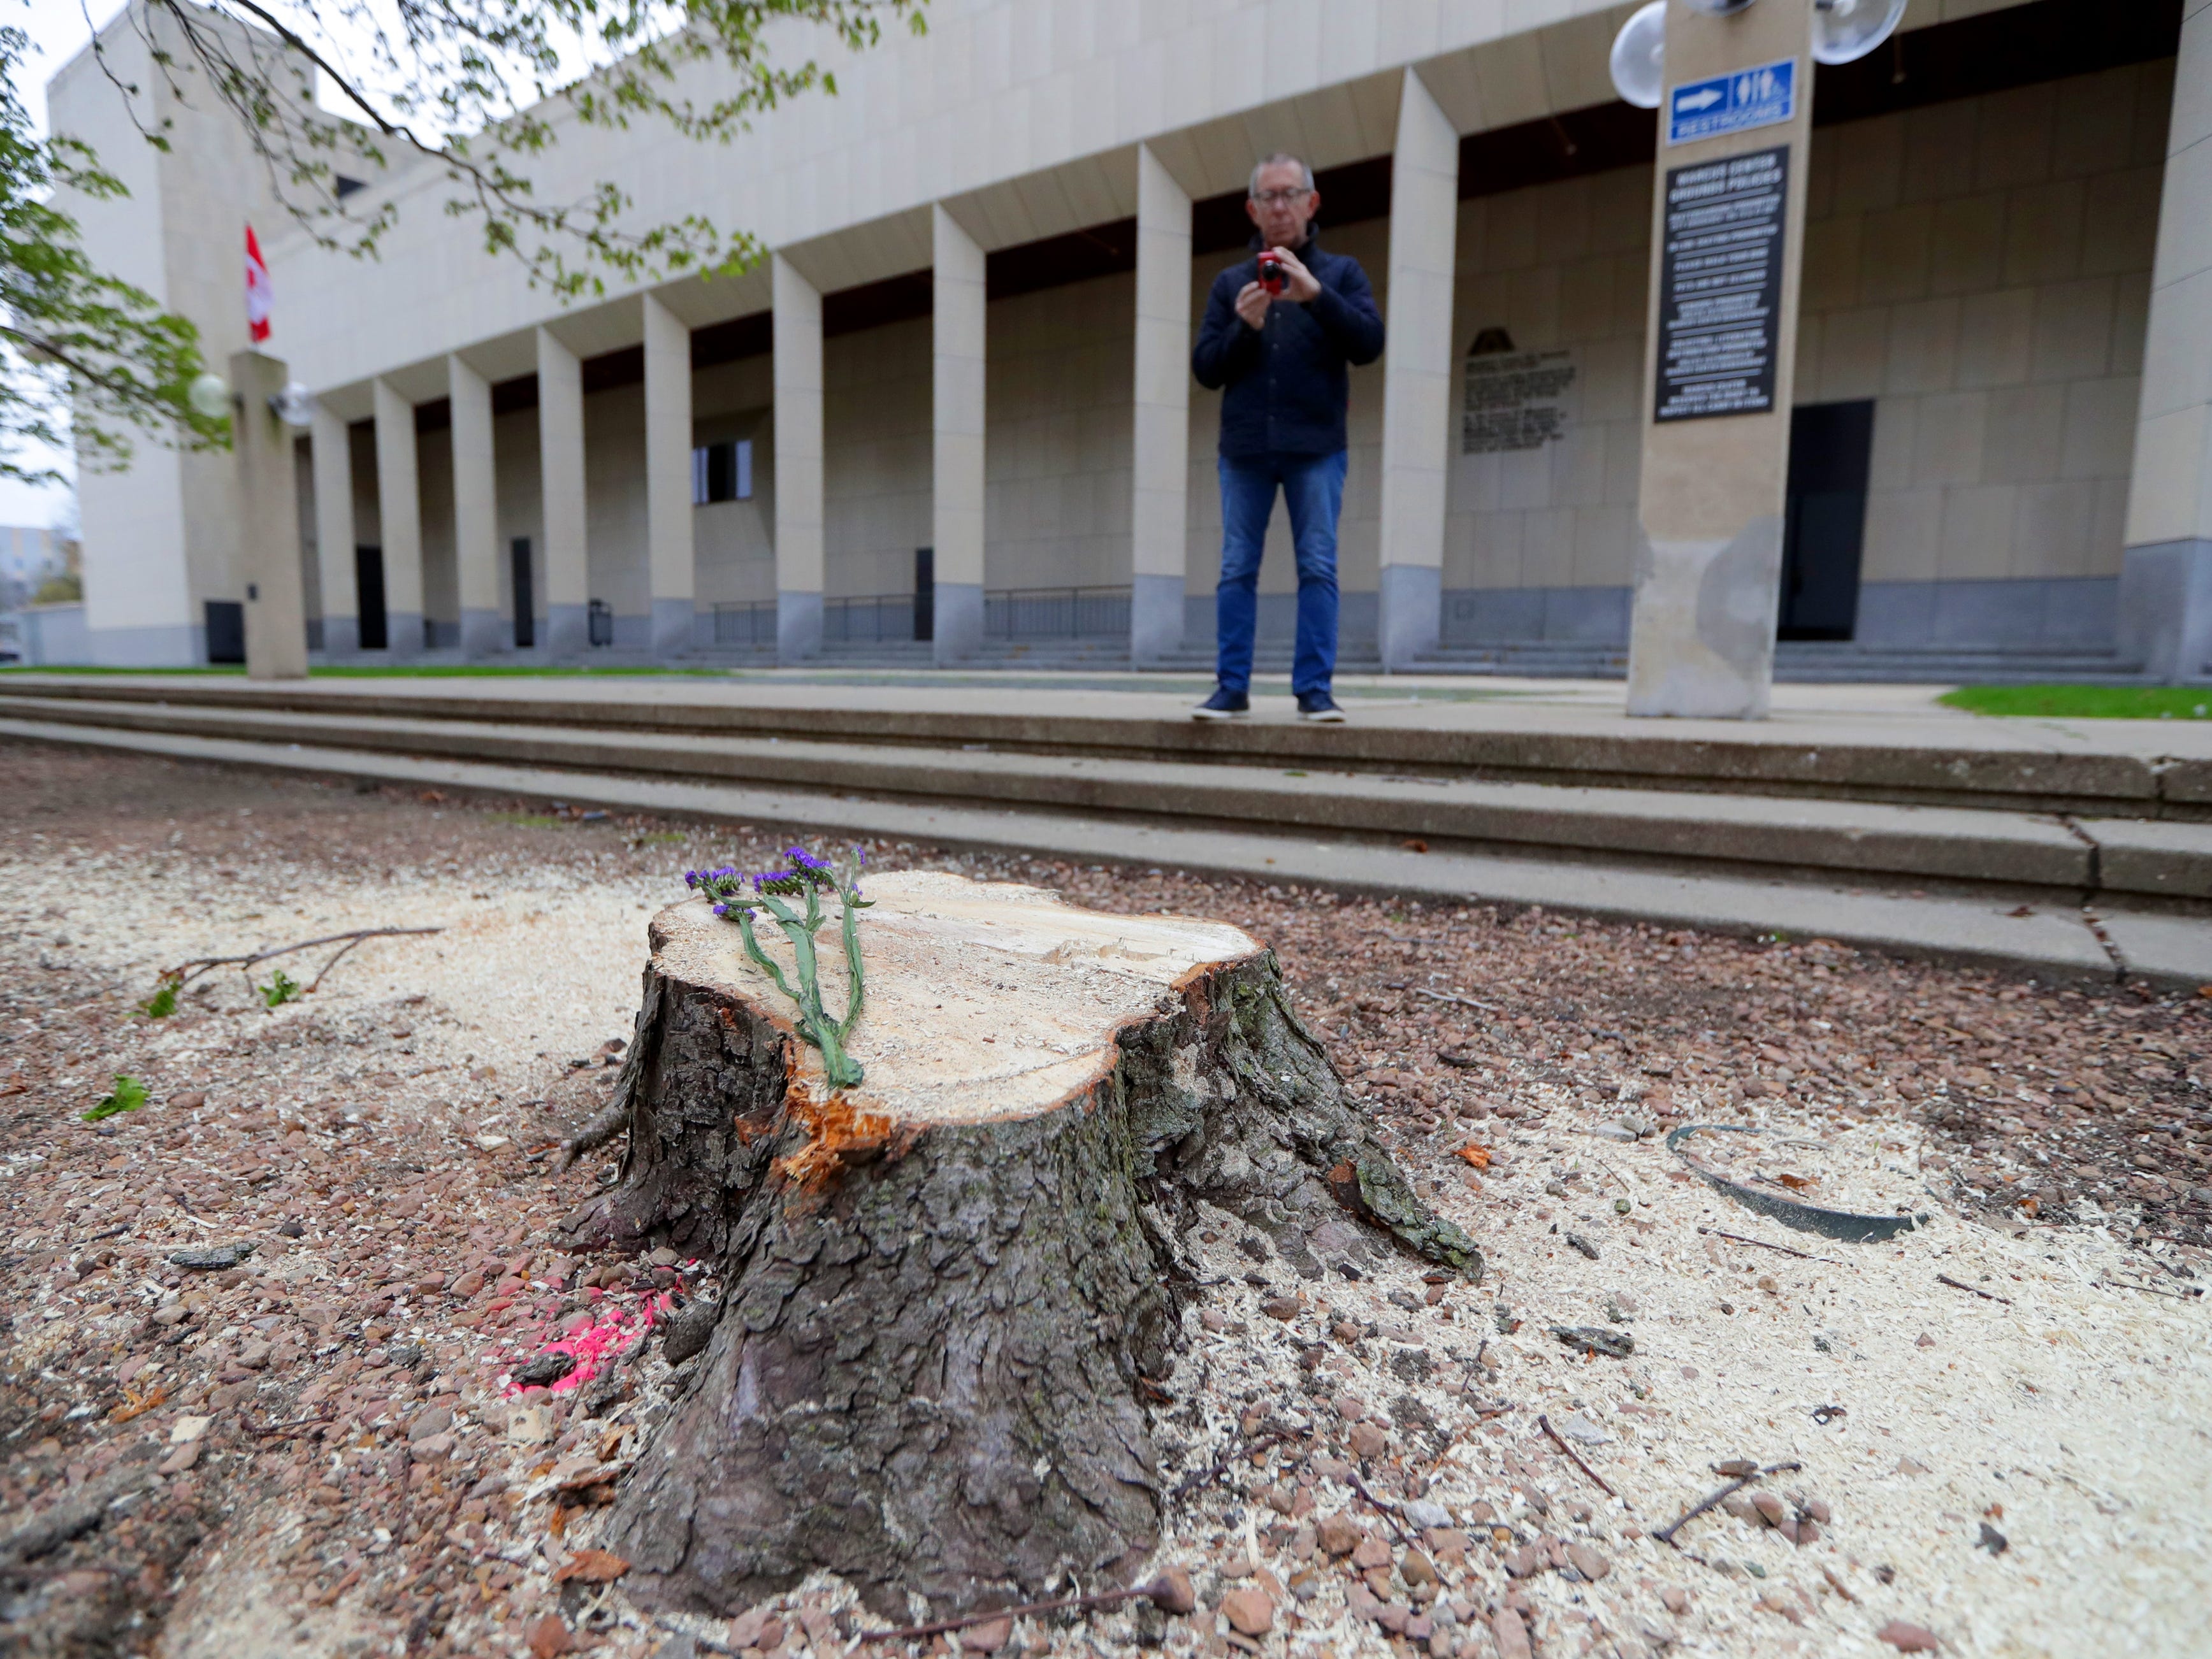 """""""It's sad,"""" said Mike Wavra of Milwaukee as he takes photos of the tree stumps in the sunken grove outside the Marcus Center for the Performing Arts in Milwaukee on Sunday. """"I don't see the necessity (for the removal),"""" Wavra continued. """"It's the only thing like this down here."""" Crews cut down nearly 20 trees Saturday morning as part of a planned renovation to convert the space into a grassy lawn."""